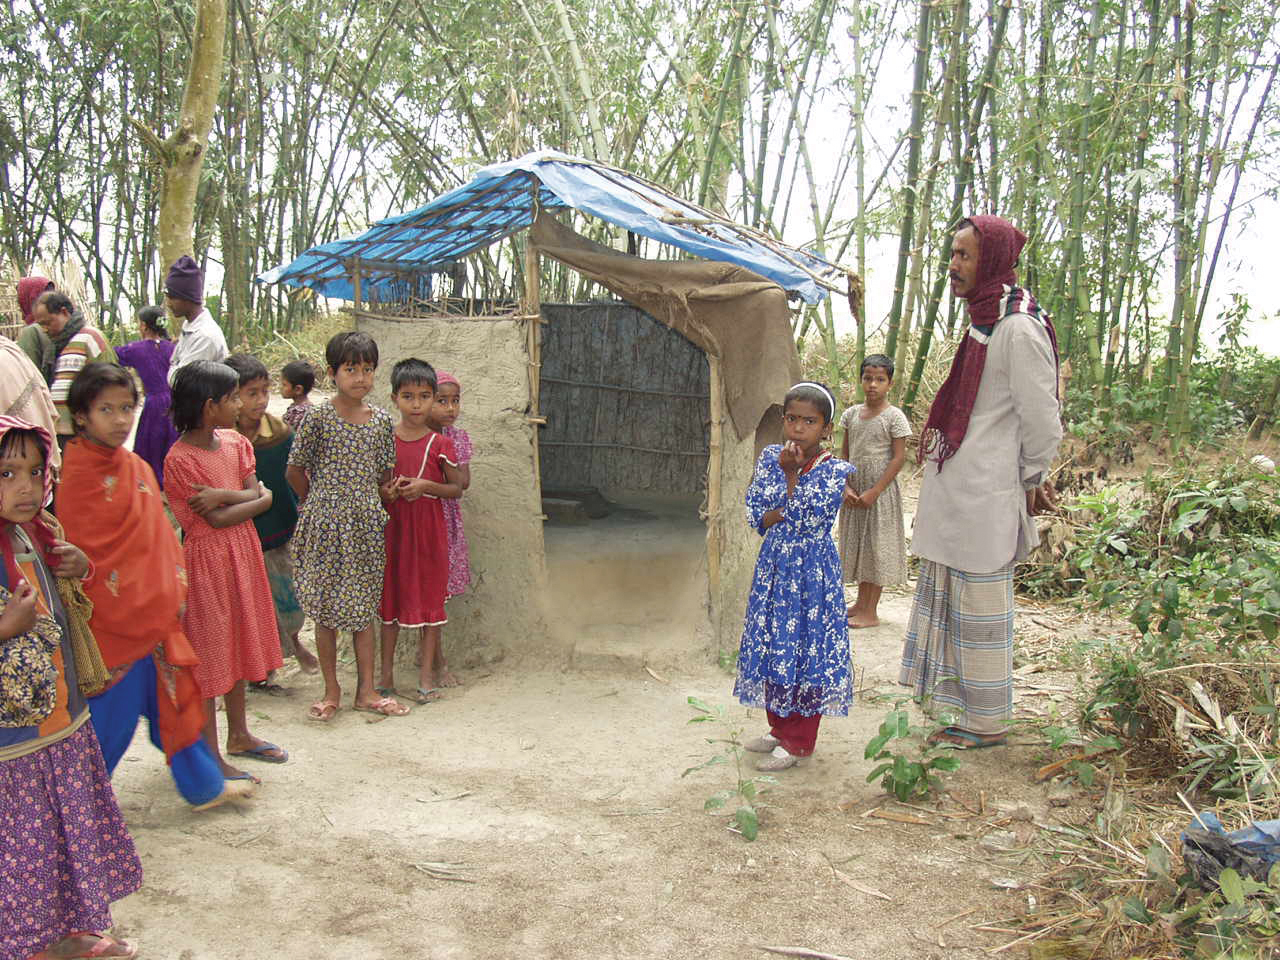 Mosmoil villagers built a sanitary latrine and worked together to stop open defecation. Photo by Shafiul Azam Ahmed for AusAID